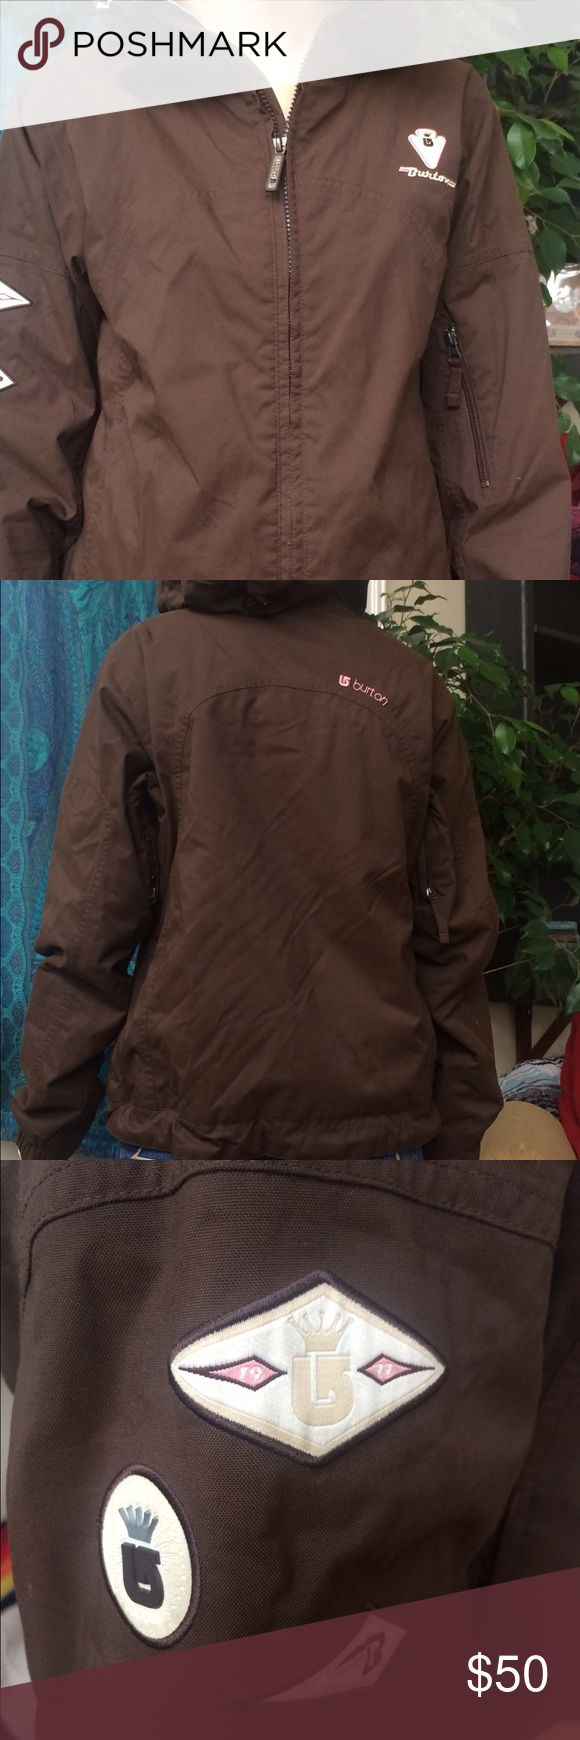 Brown Burton Ski Jacket Burton Ski Jacket with pink and gold accents and a gold interior. Has air vents on the arms for air flow. In great condition besides some wear by the left thumb hole as shown in the photos. Jacket has been priced accordingly :) Burton Jackets & Coats Utility Jackets